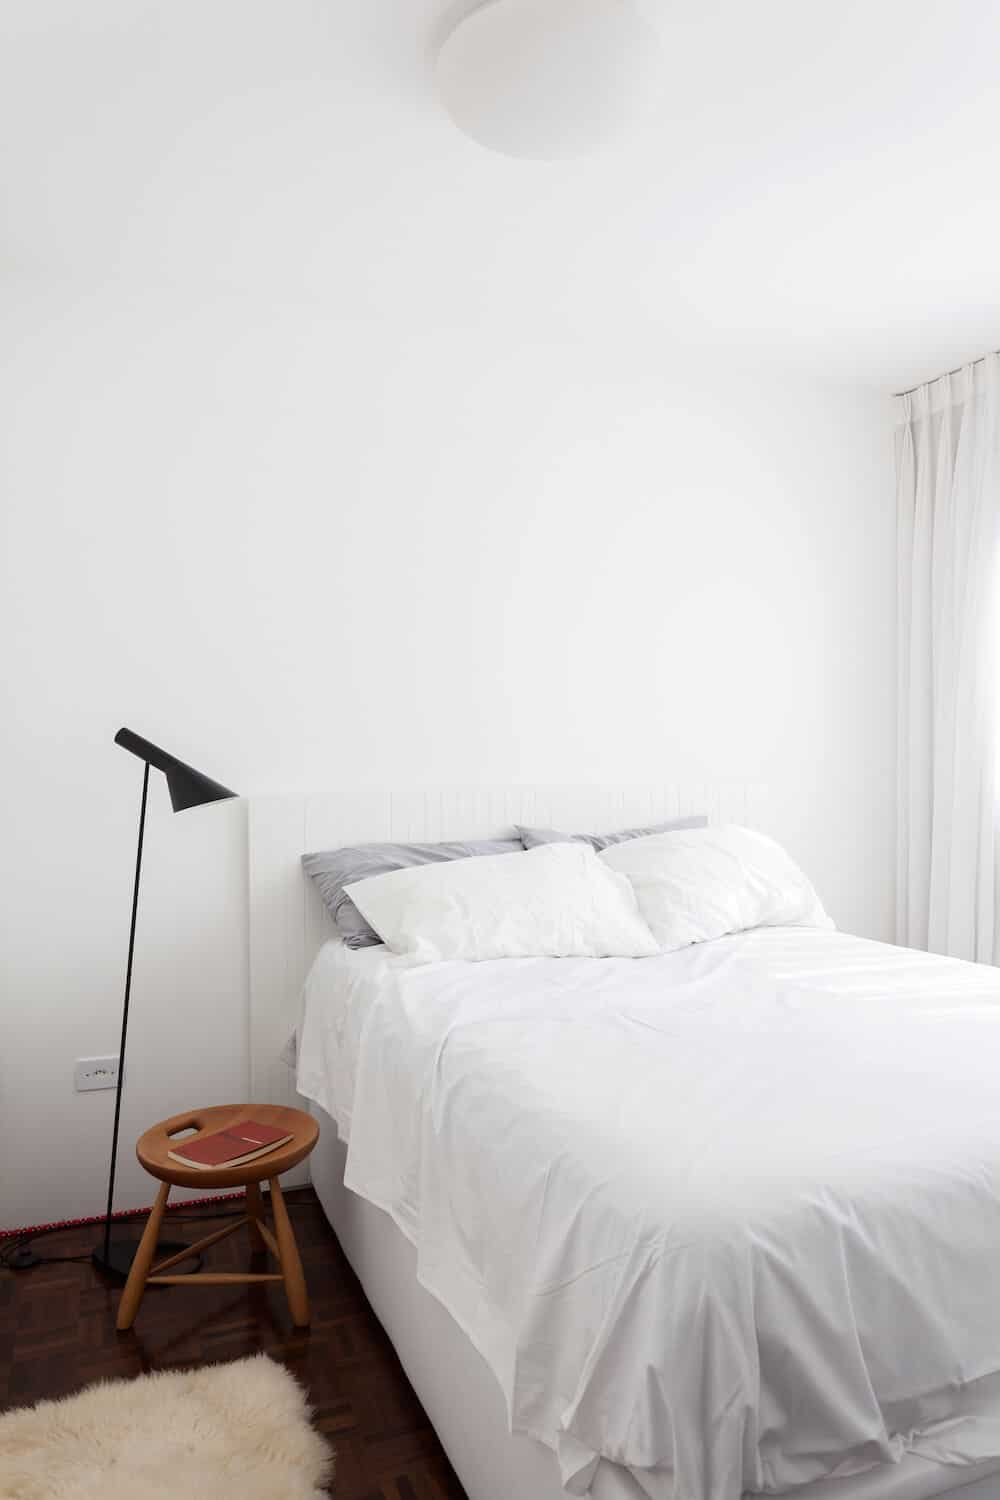 White primary bedroom contrasted by a parquet dark hardwood flooring. The room is filled with a beadboard bed, a faux fur rug and a small round side table lighted by a black floor lamp.